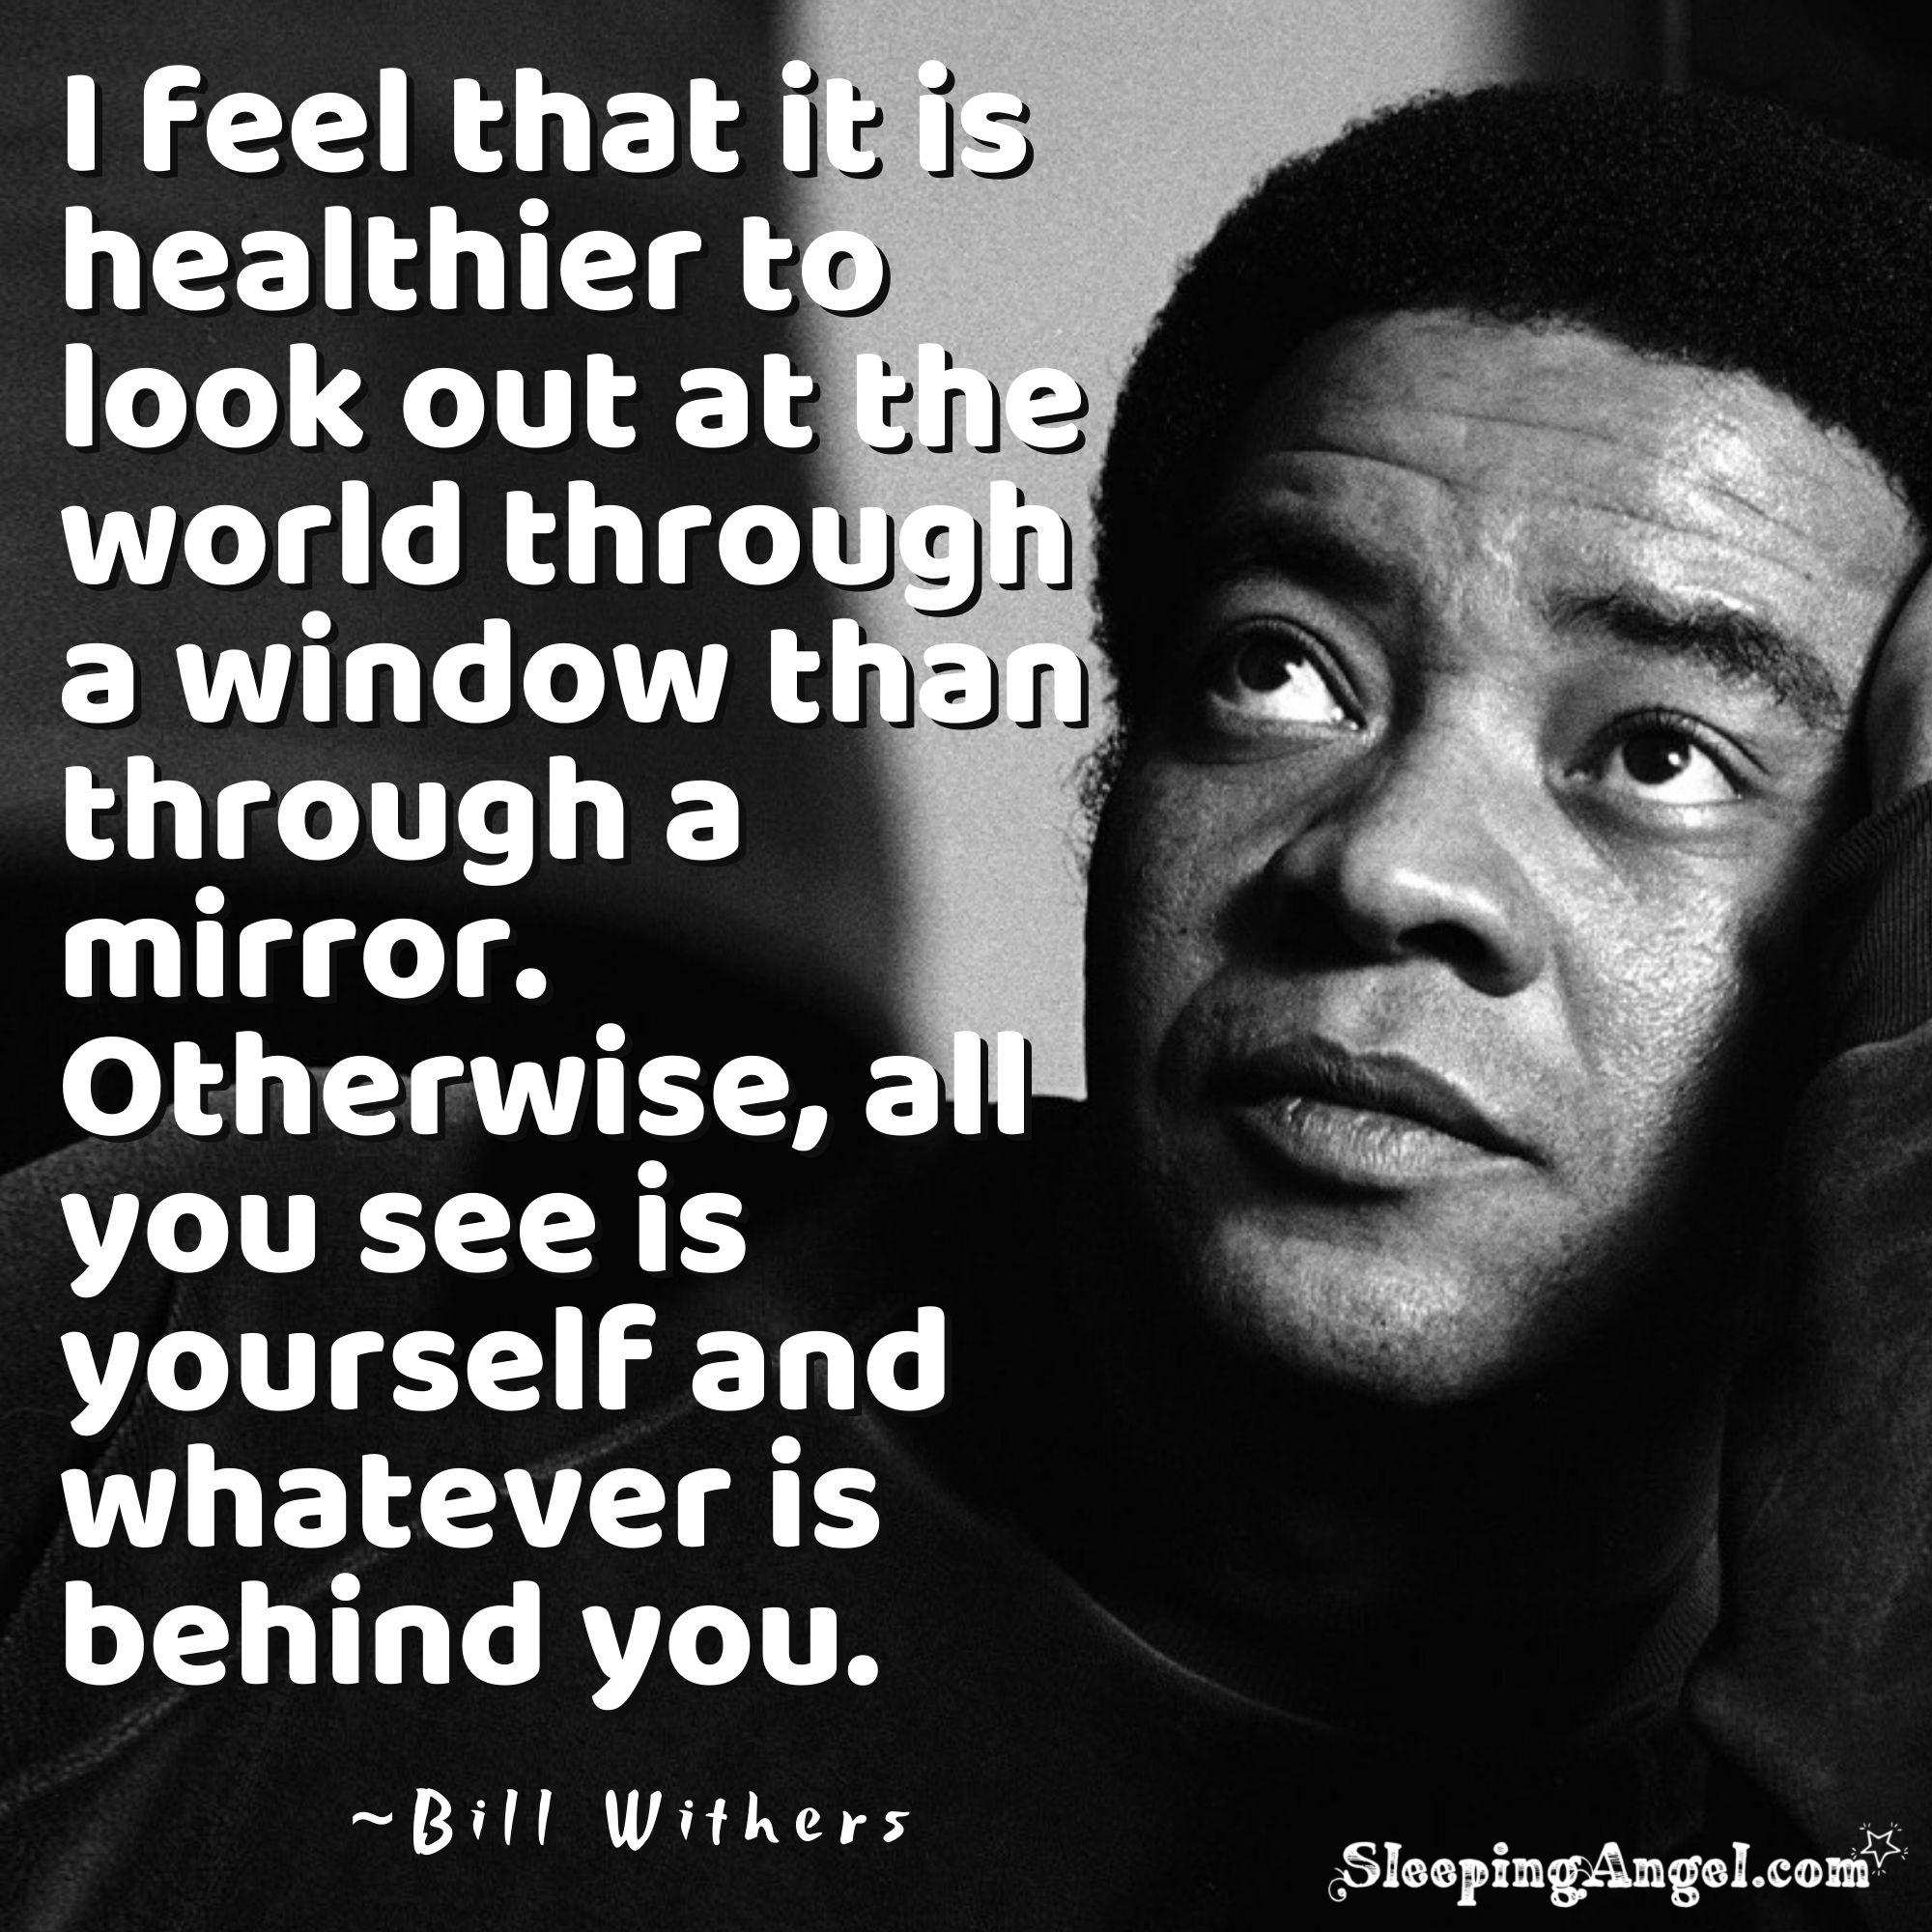 Bill Withers Quote